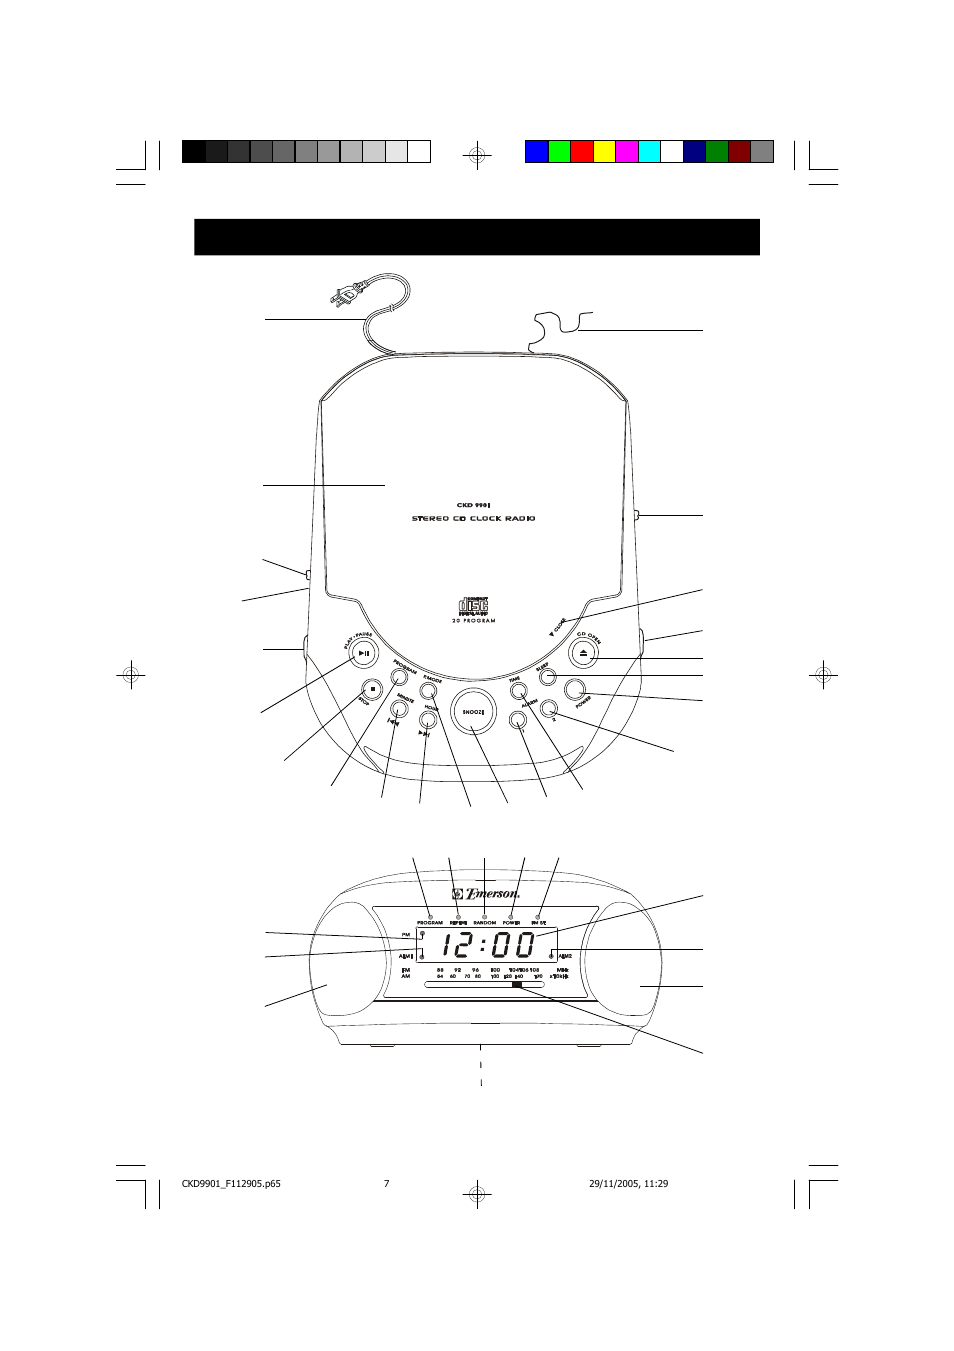 location of controls and indicators emerson radio ckd9901 user rh manualsdir com